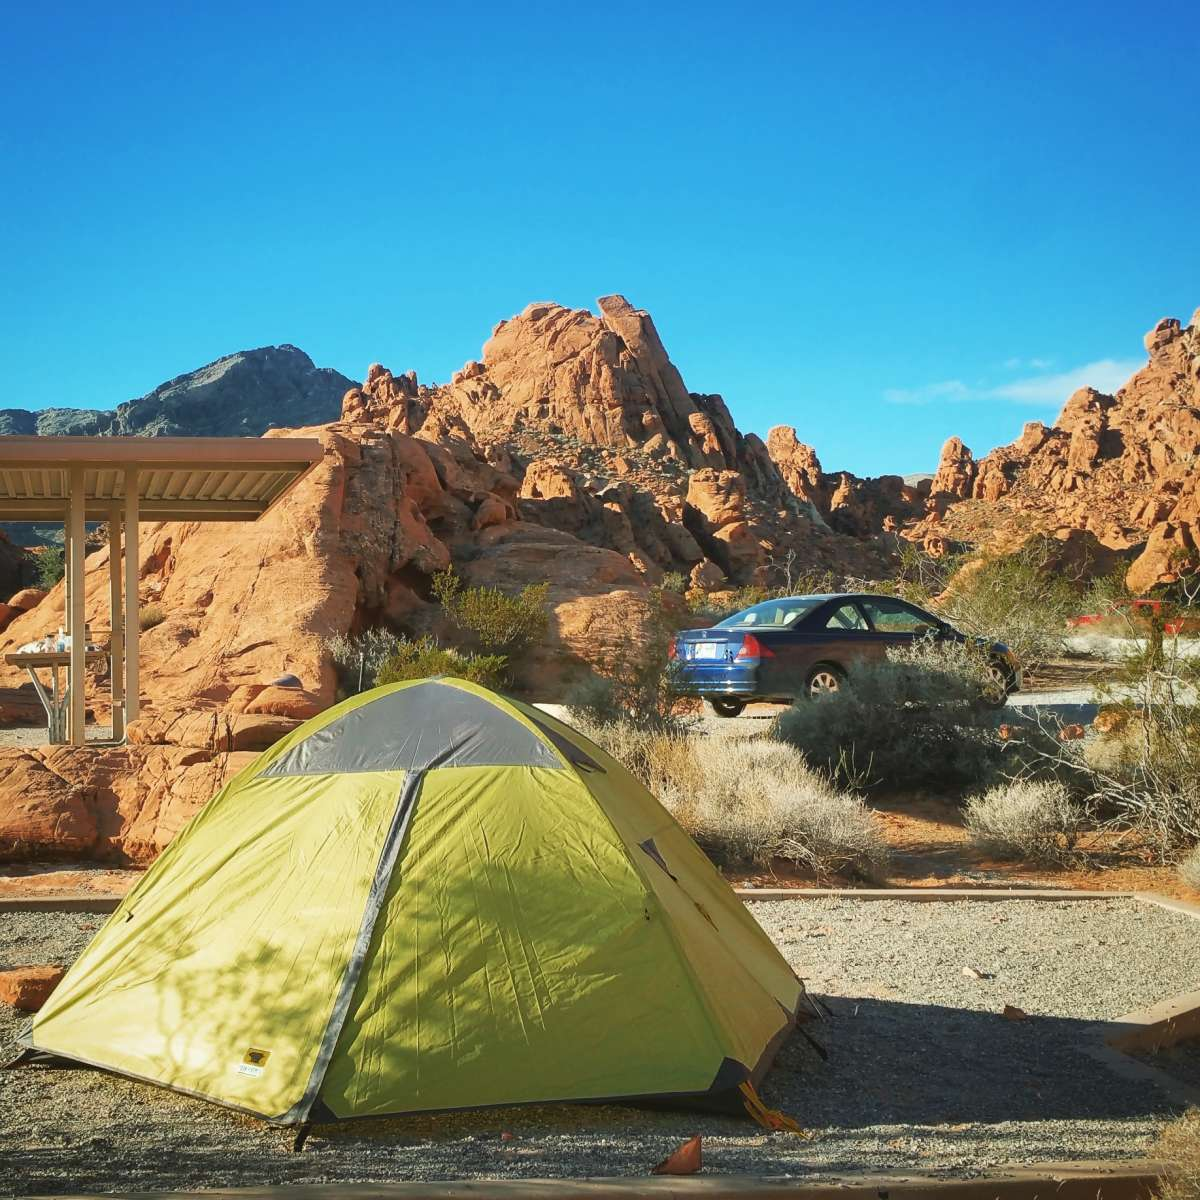 Arch Rock Campground, Valley of Fire, NV: 6 Hipcamper